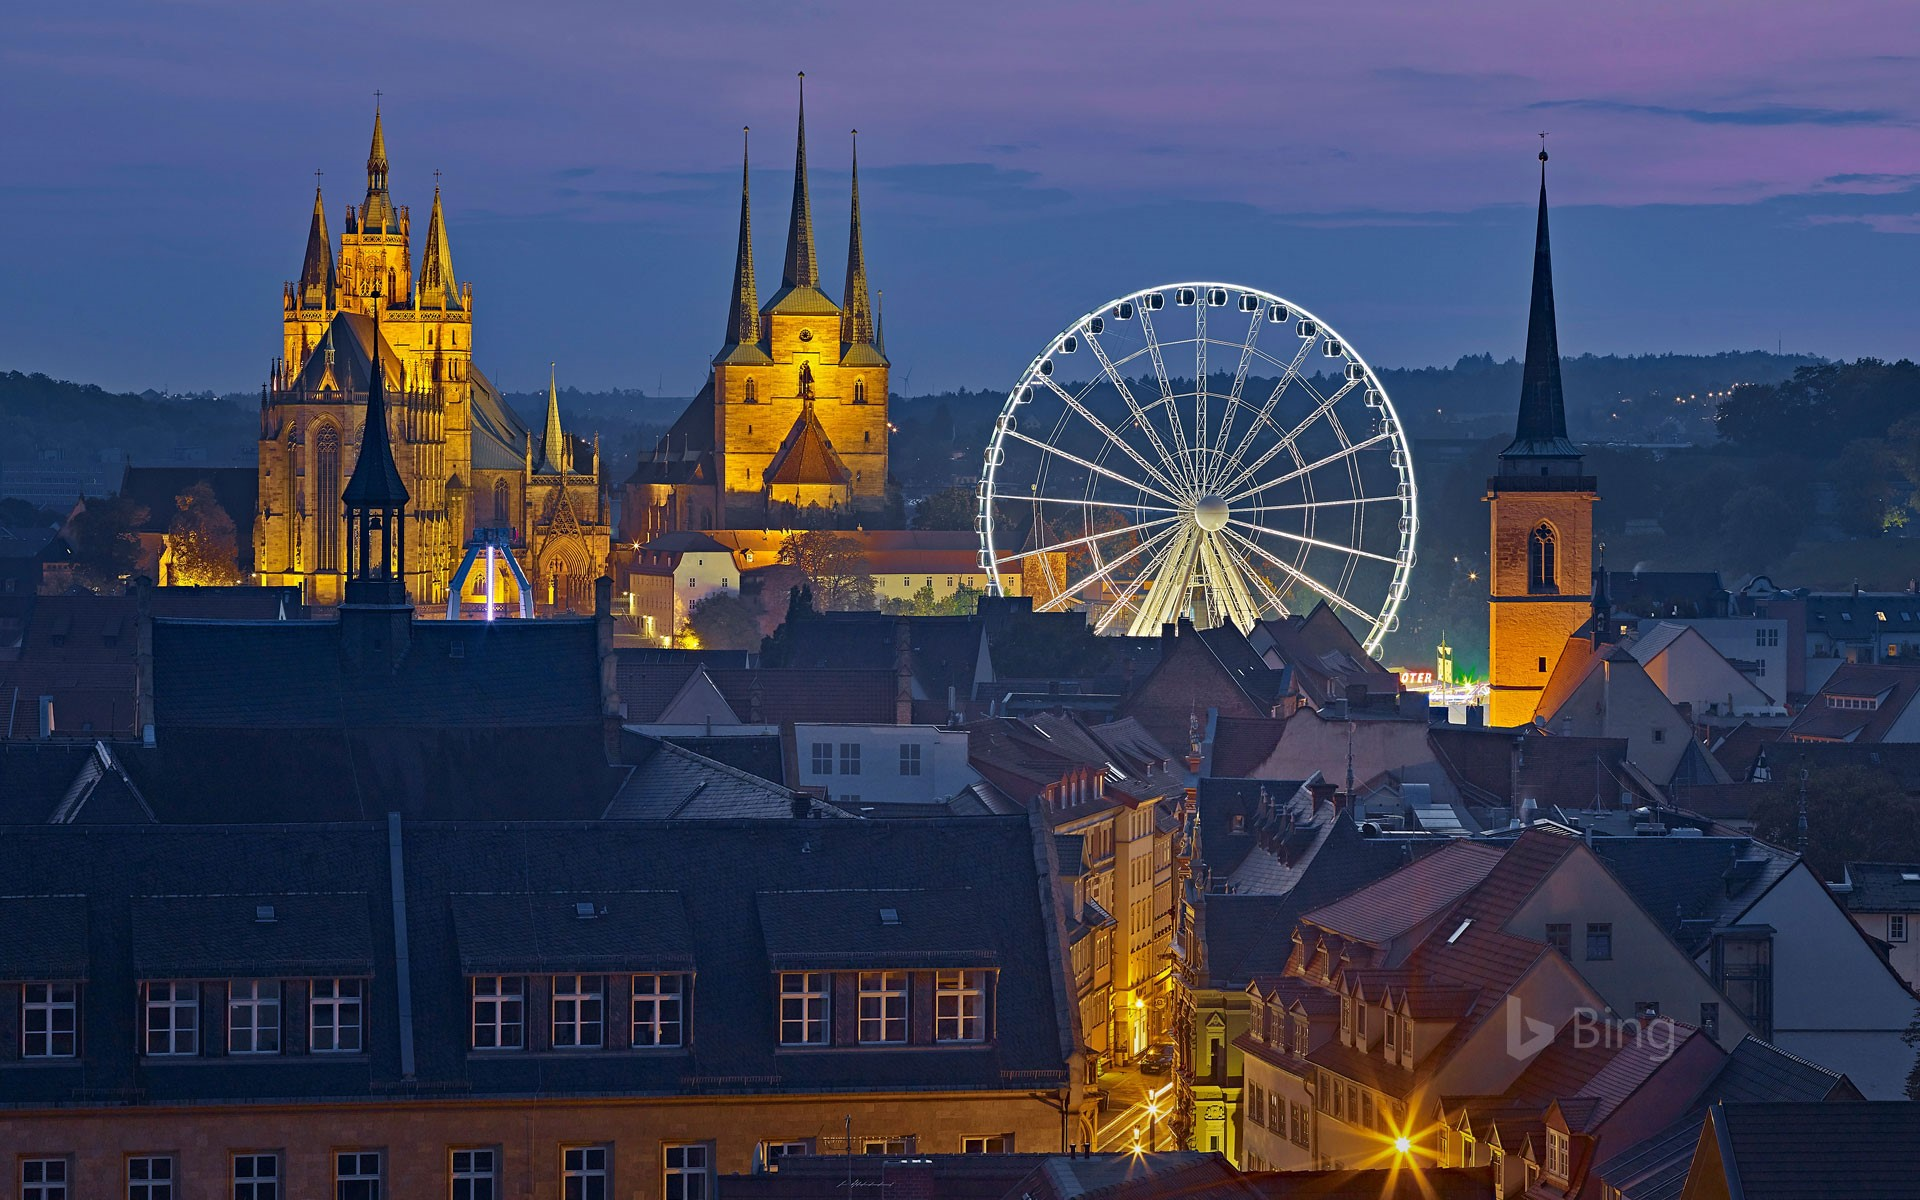 View of the Ferris wheel, Erfurt Cathedral and St. Severus Church during Oktoberfest in Erfurt, Germany